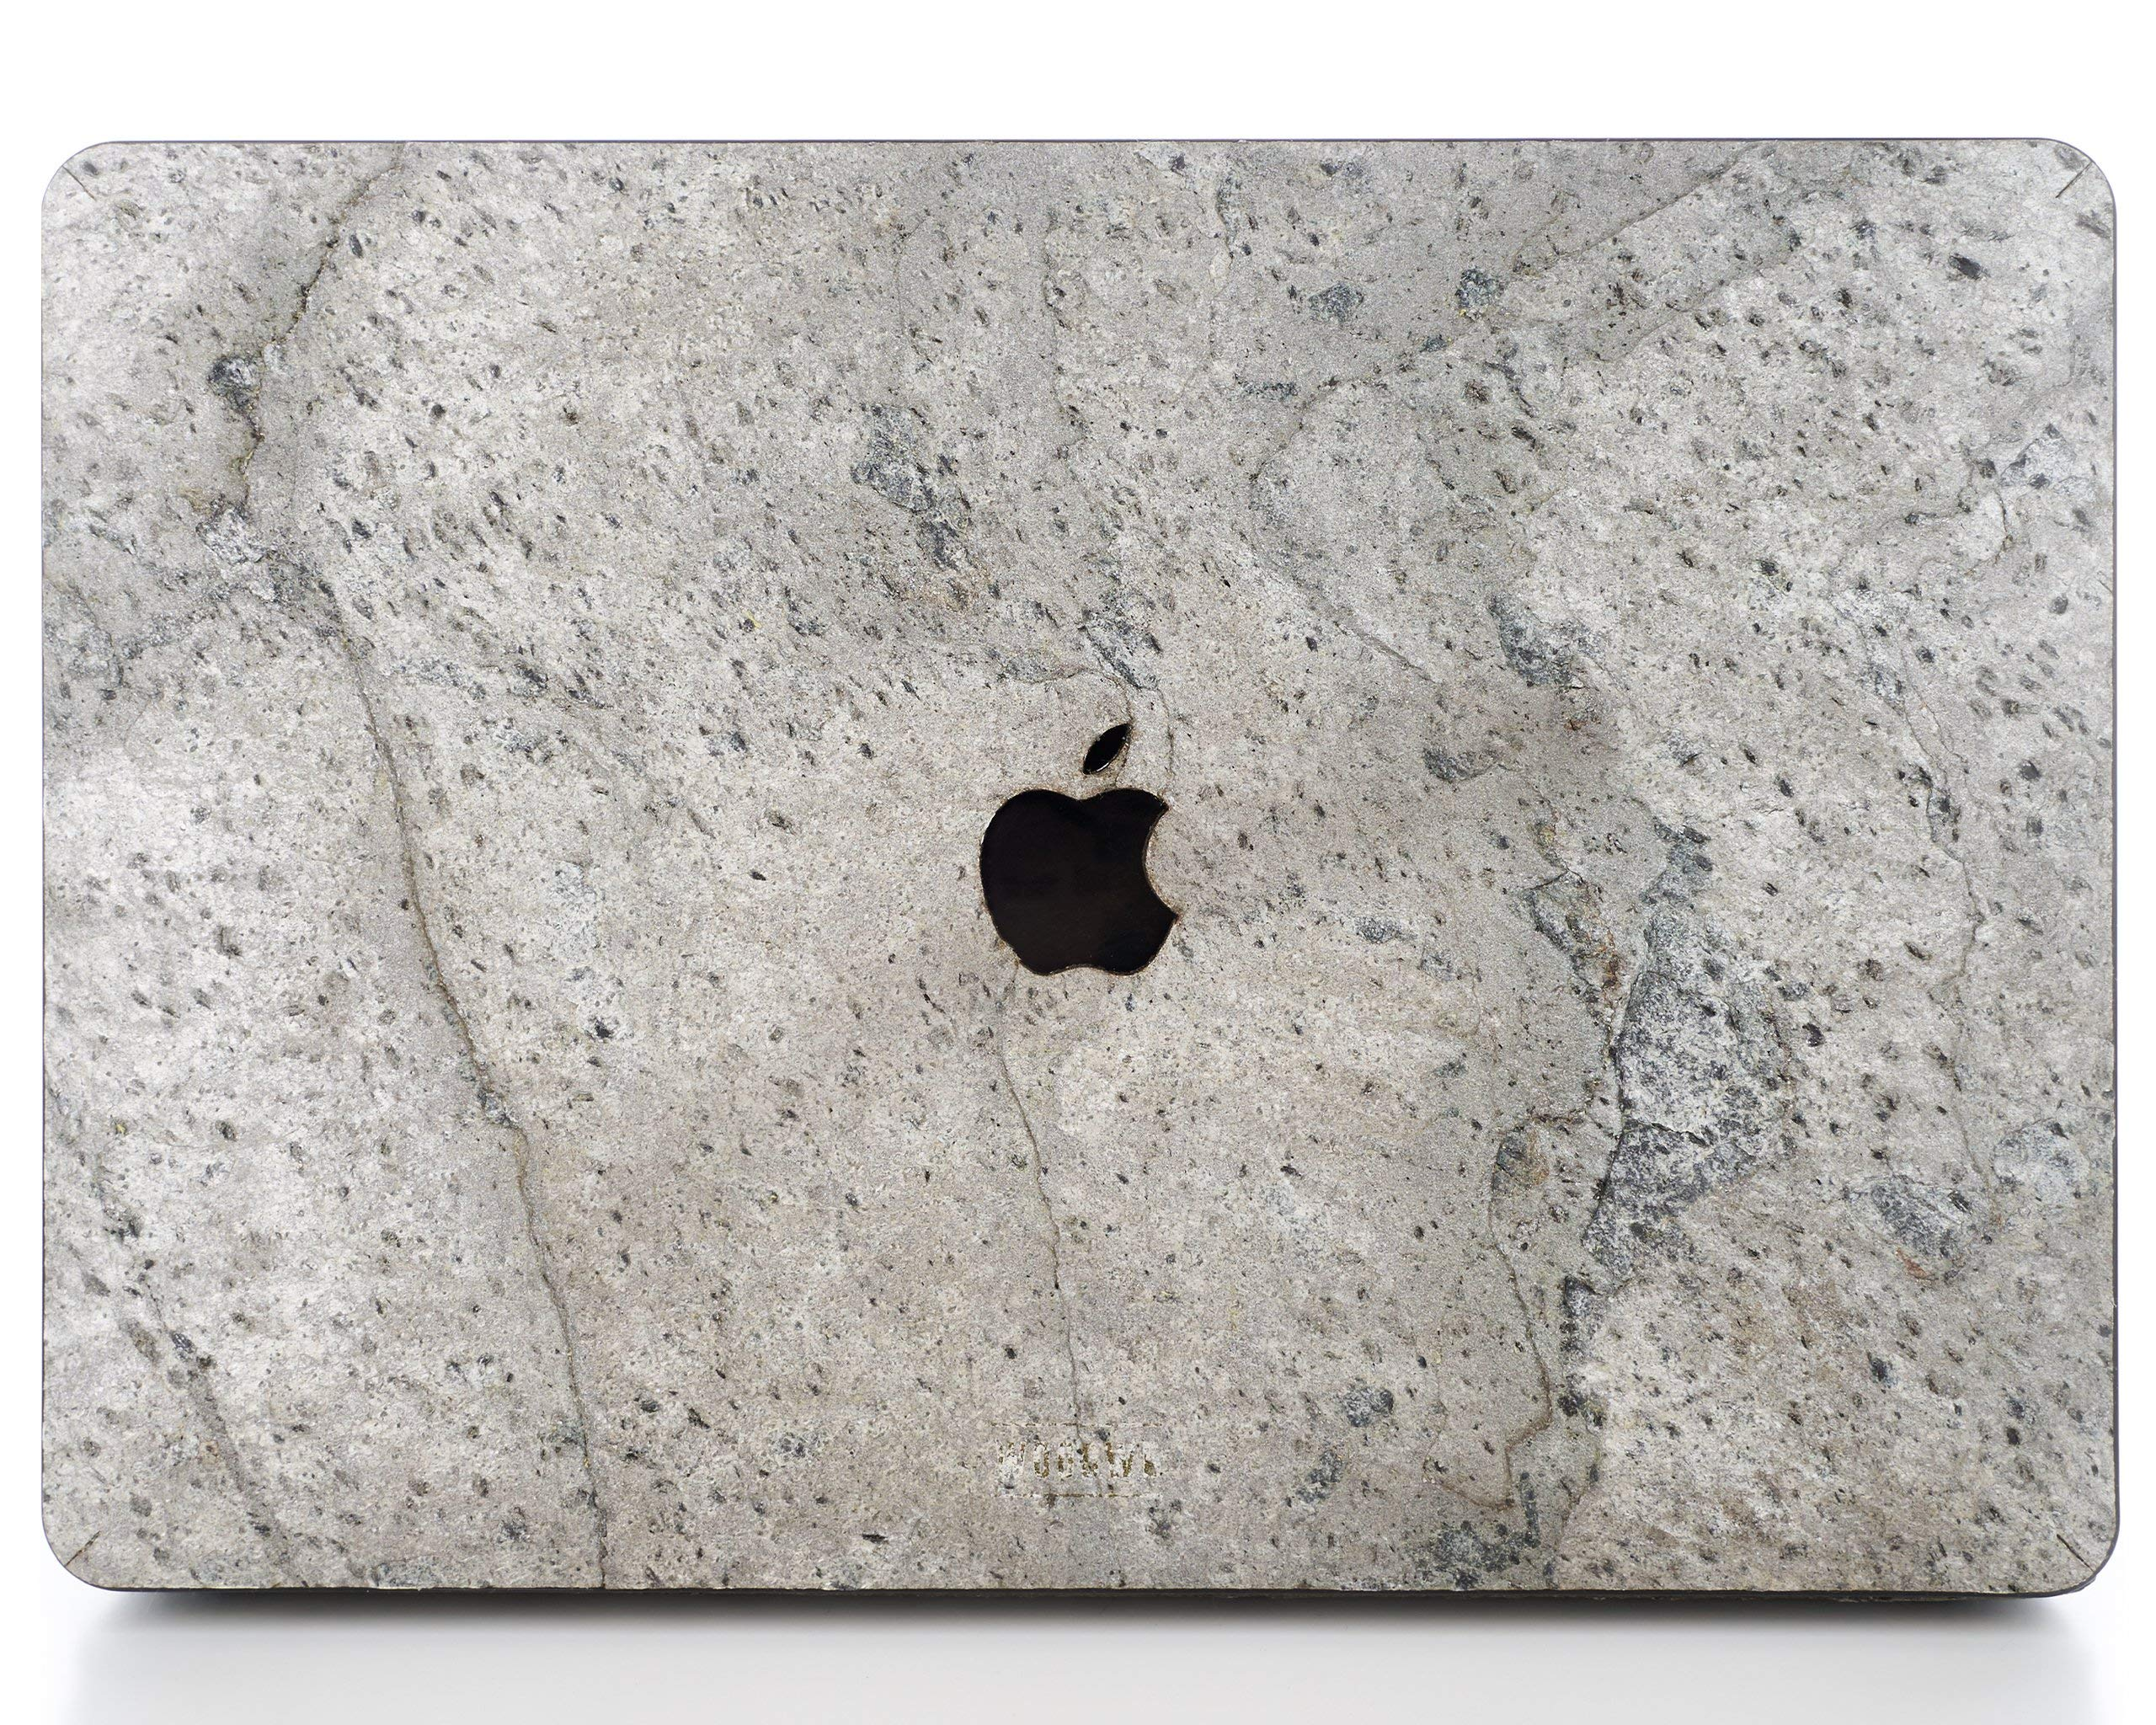 WOODWE Real Stone MacBook Hard Case for Protection | for Mac Pro 15 inch Retina Display/White Apple Logo | Mid 2012 – Mid 2015 | Natural Silver Grey Stone